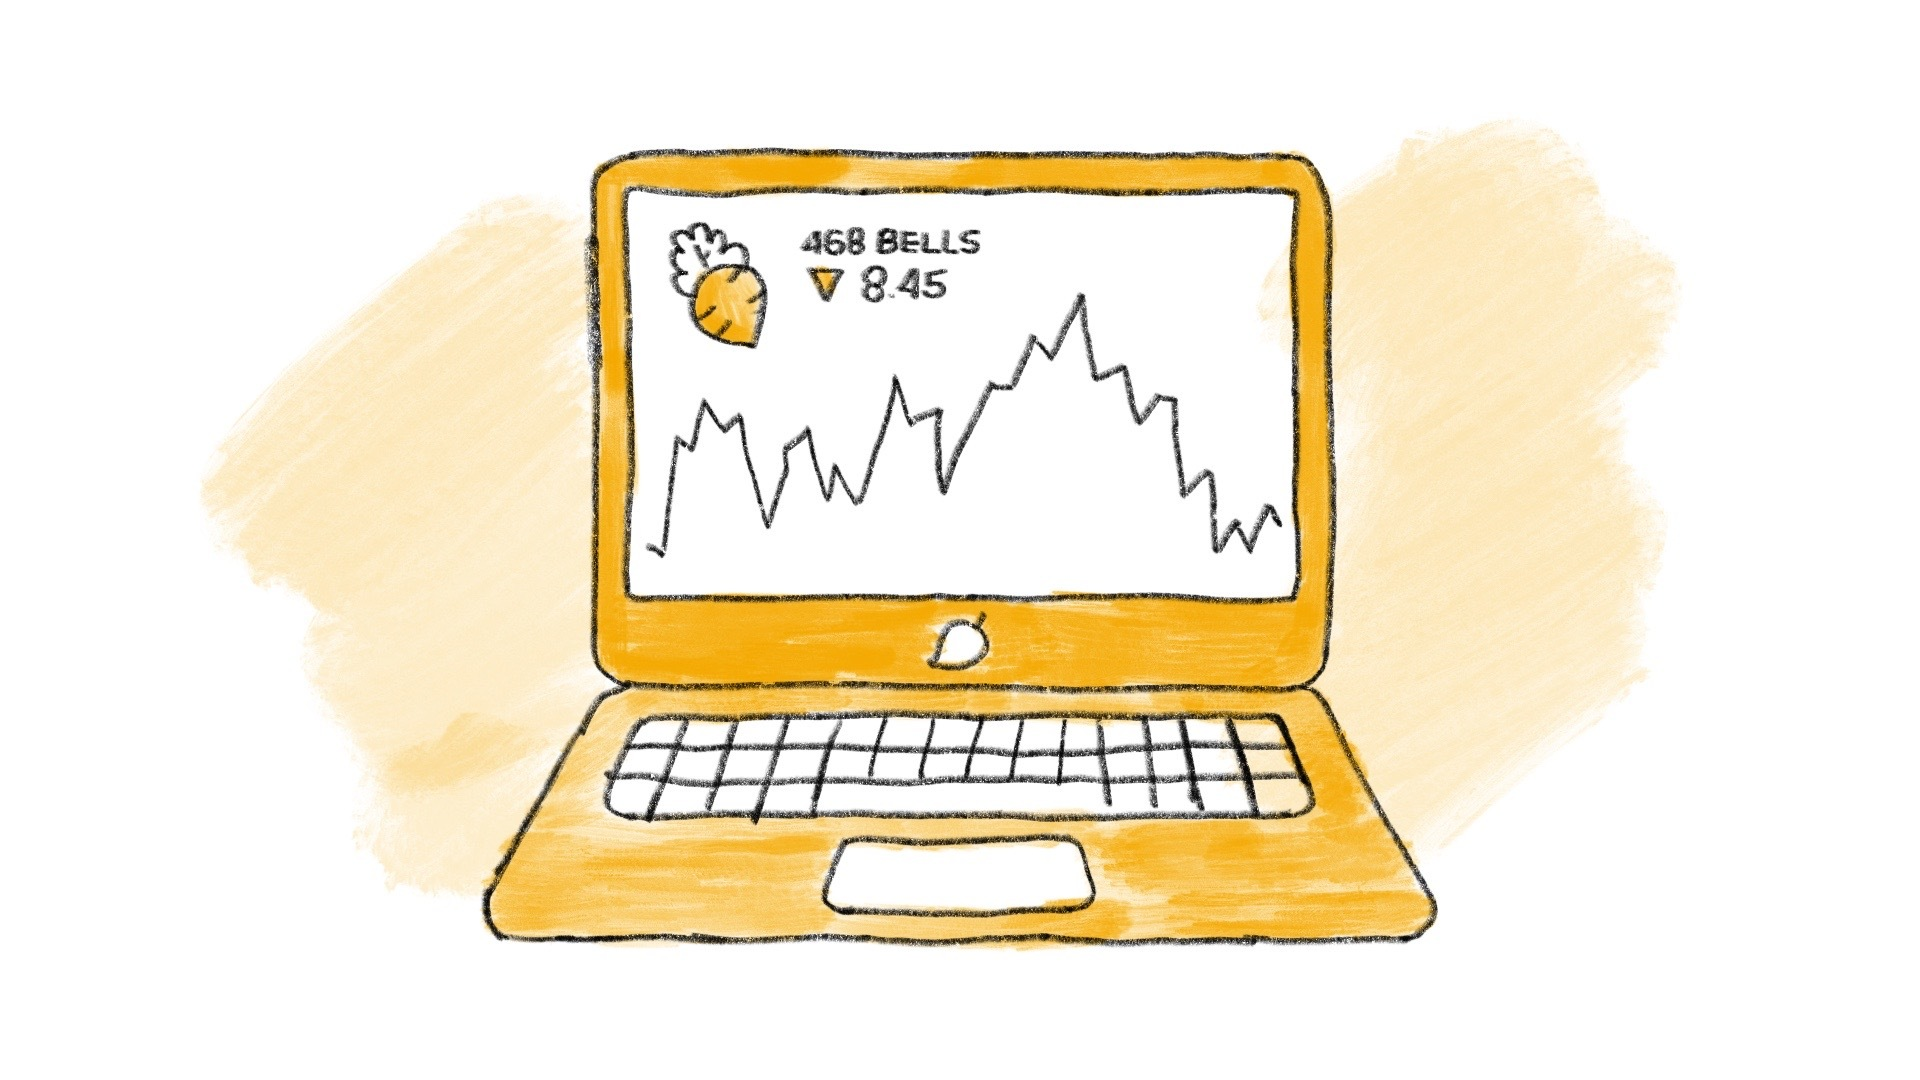 Illustrated stock market displayed on a computer